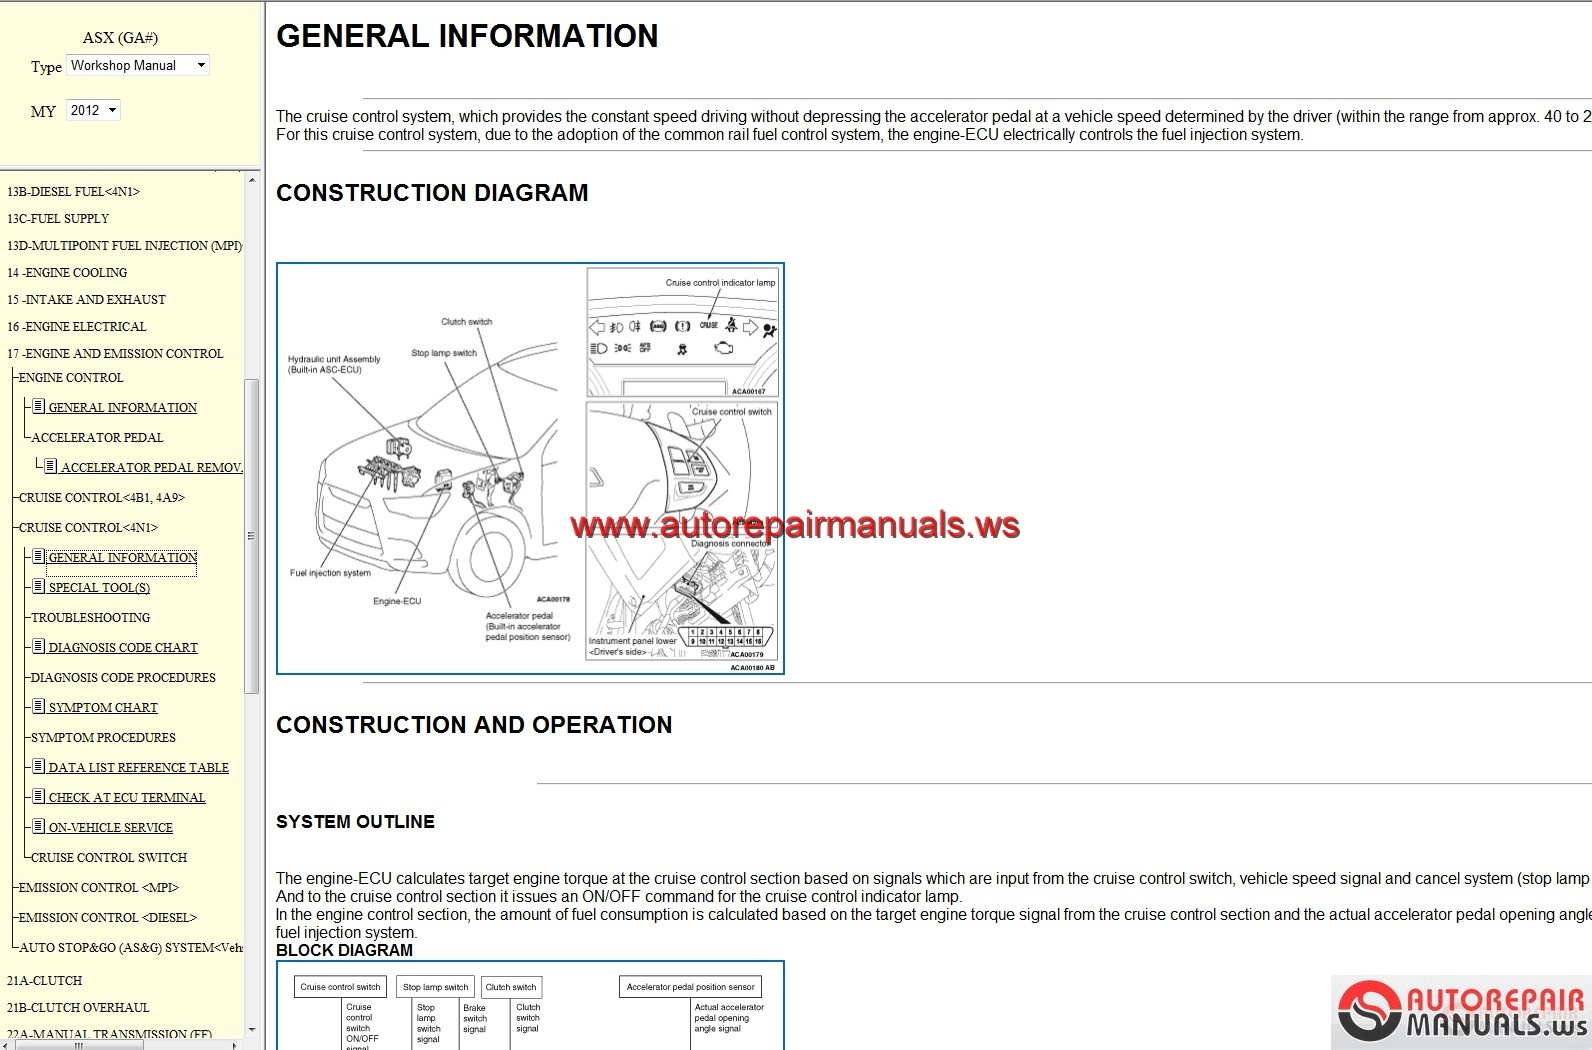 collection wiring diagram 1988 mitsubishi mighty max pictures wiring diagram mitsubishi rvr wiring diy wiring diagrams manual and wiring diagram mitsubishi rvr wiring diy wiring diagrams manual and